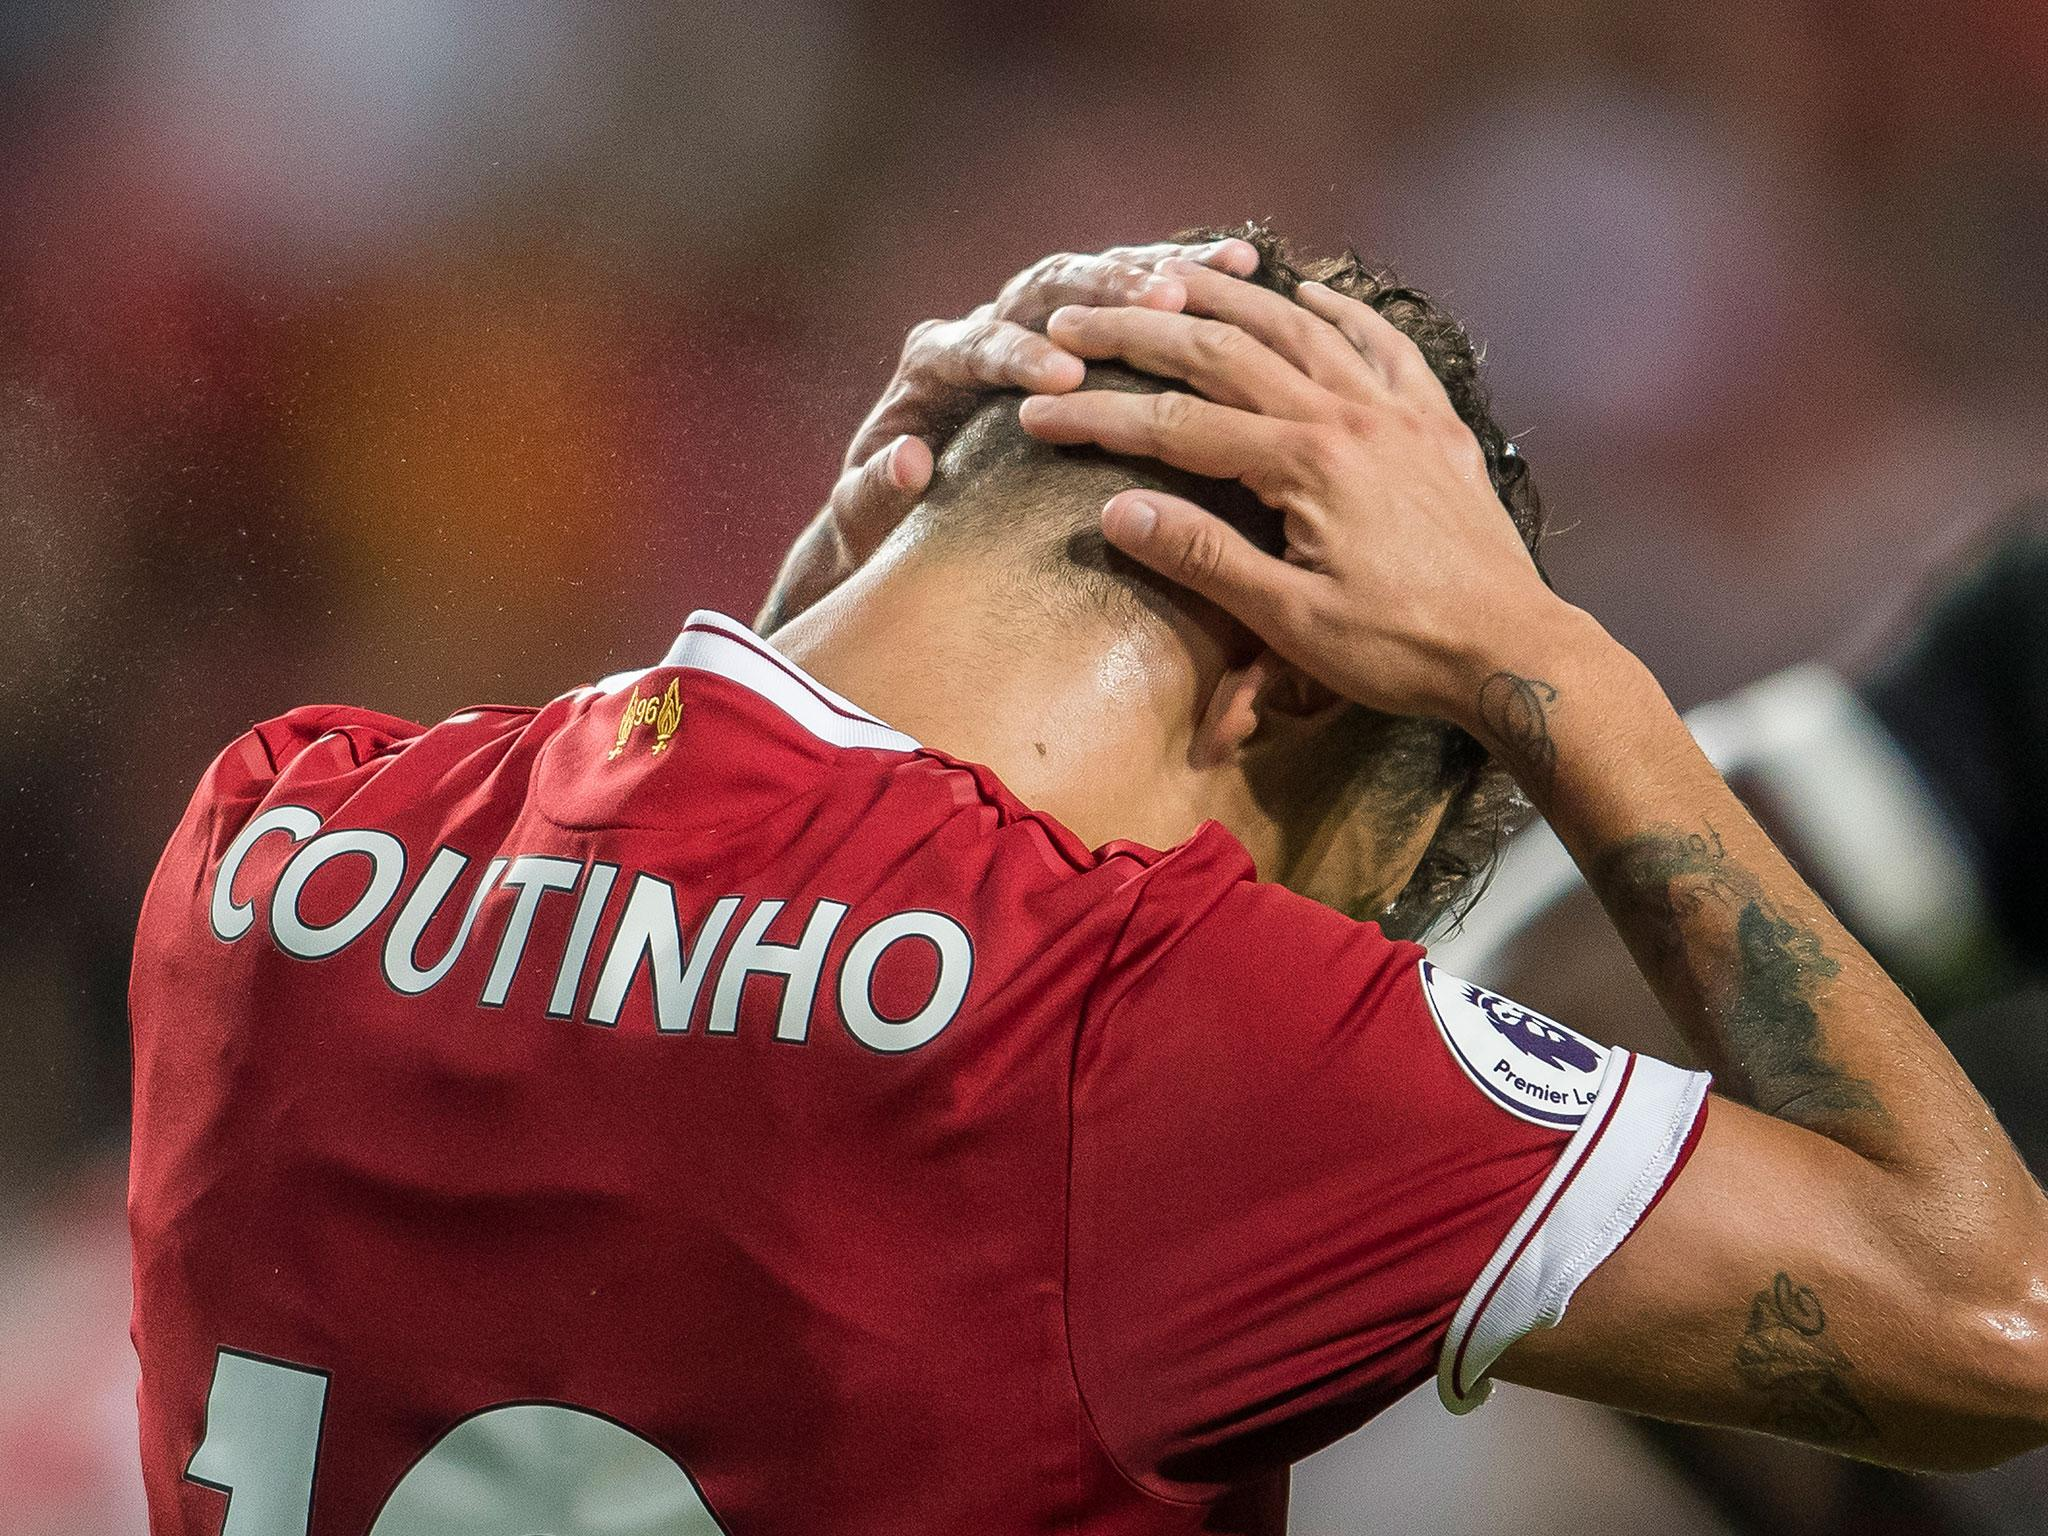 Liverpool reject third bid from Barcelona for Philippe Coutinho worth over £110m